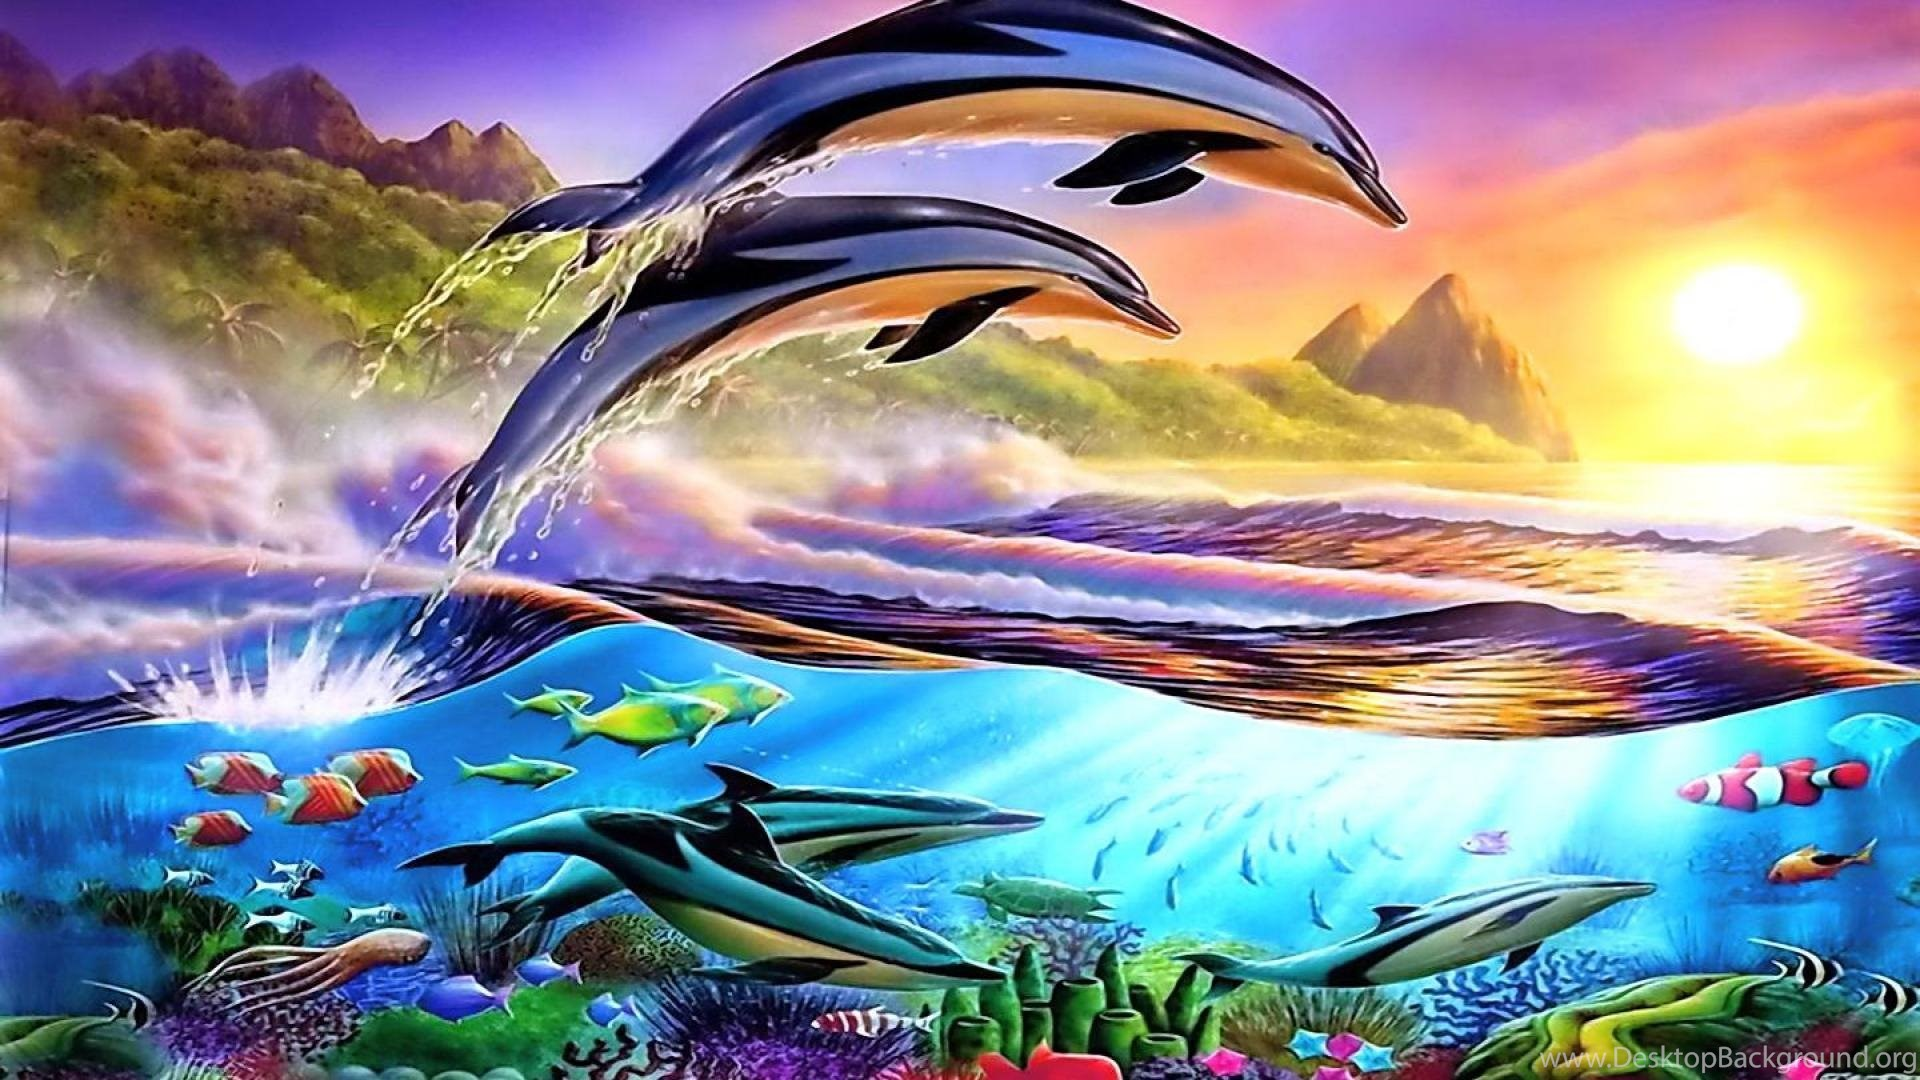 Dolphin wallpapers hd resolution desktop background popular voltagebd Image collections